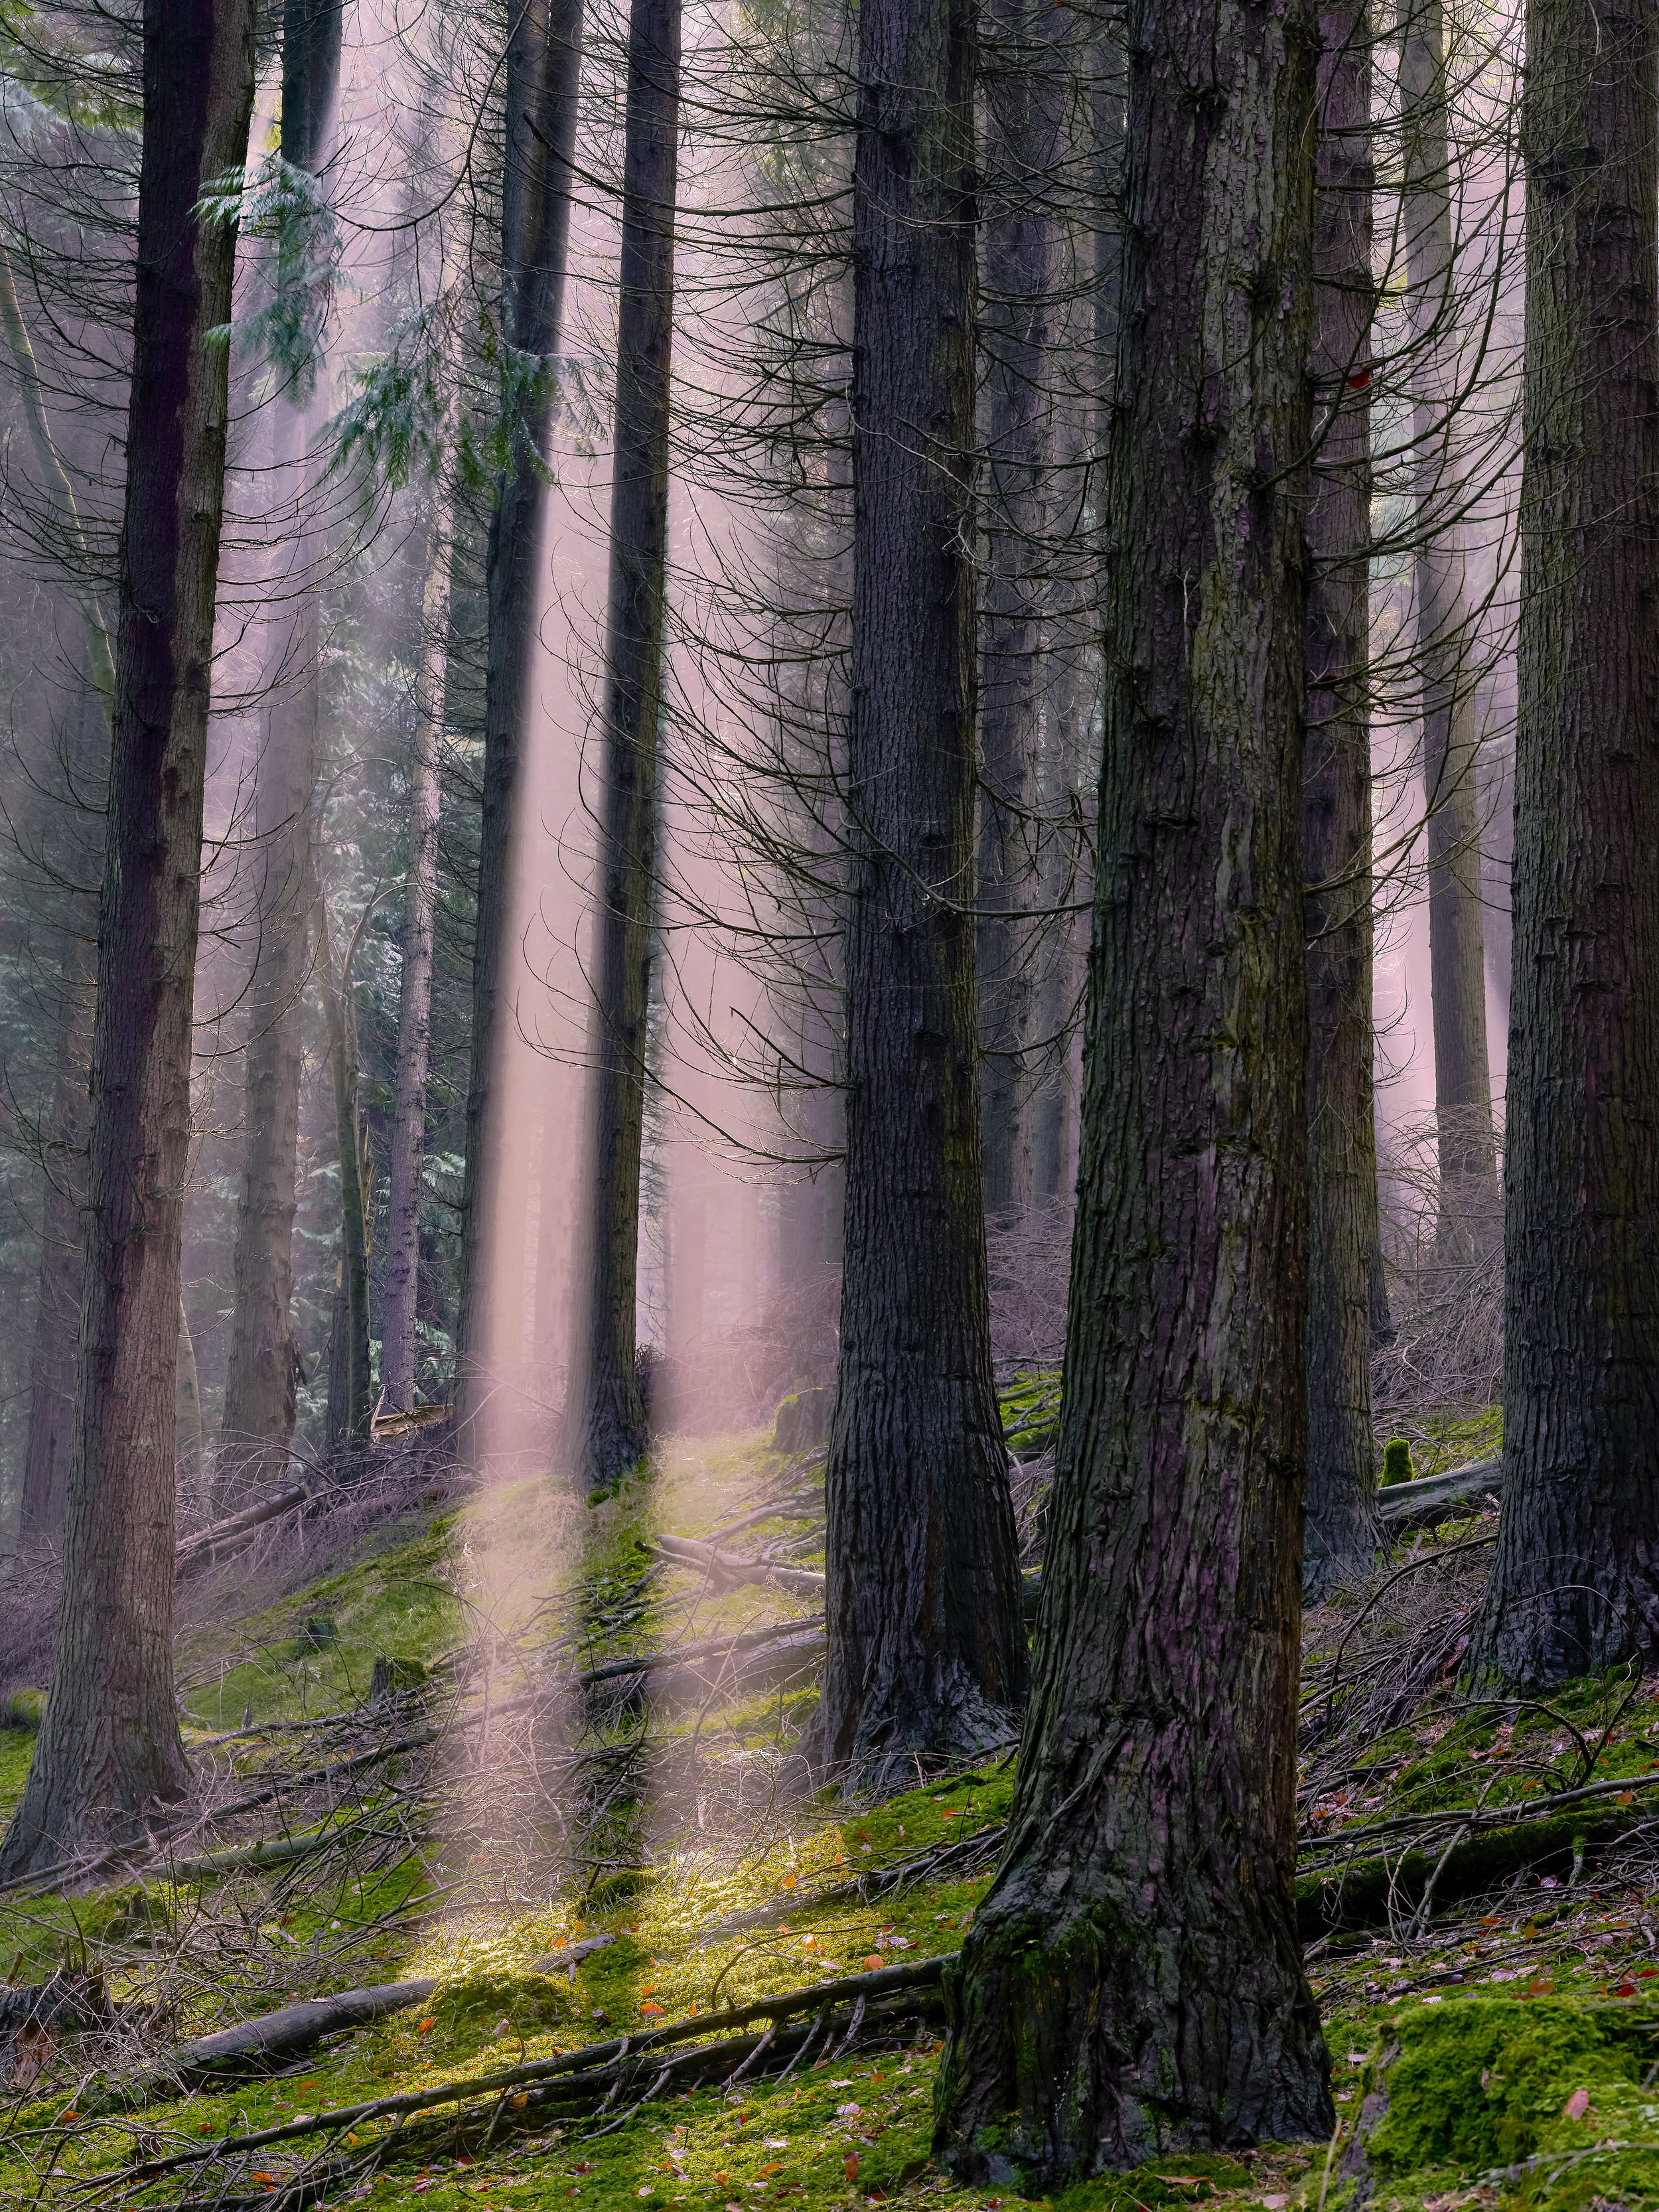 Autumn's last days from northern Spain's forests whilst using trees as framing devices.